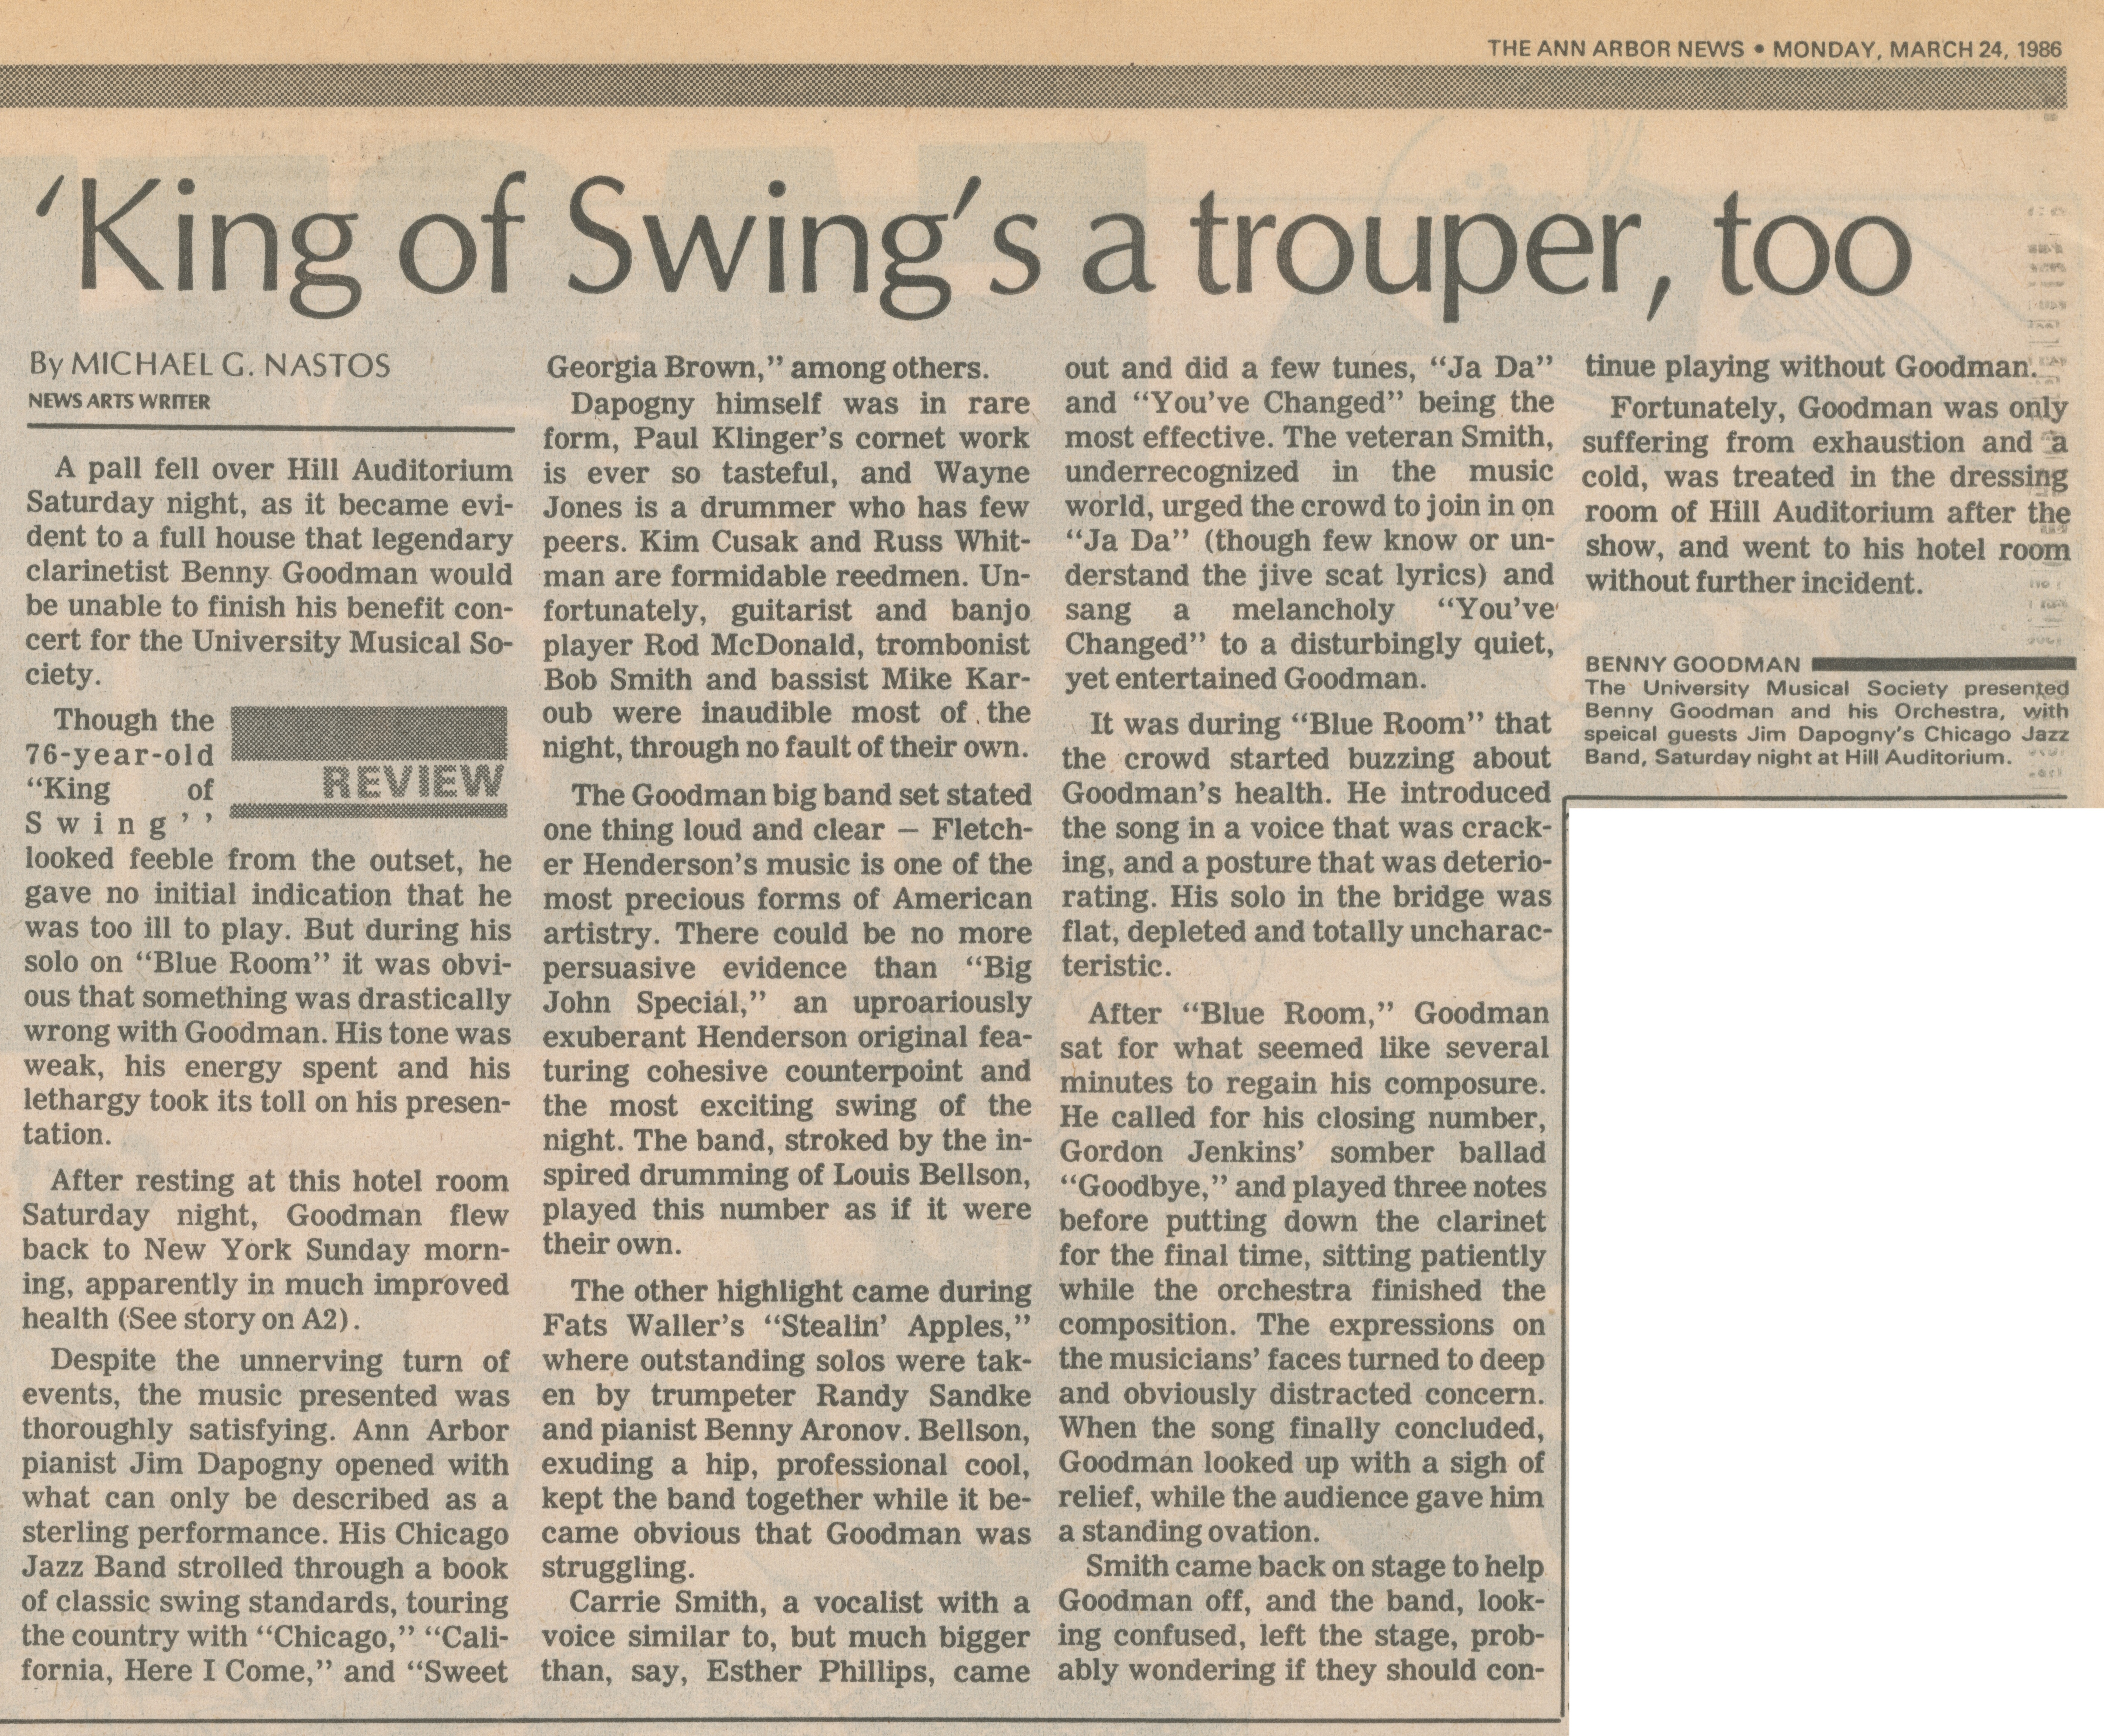 'King of Swing's a trouper, too image